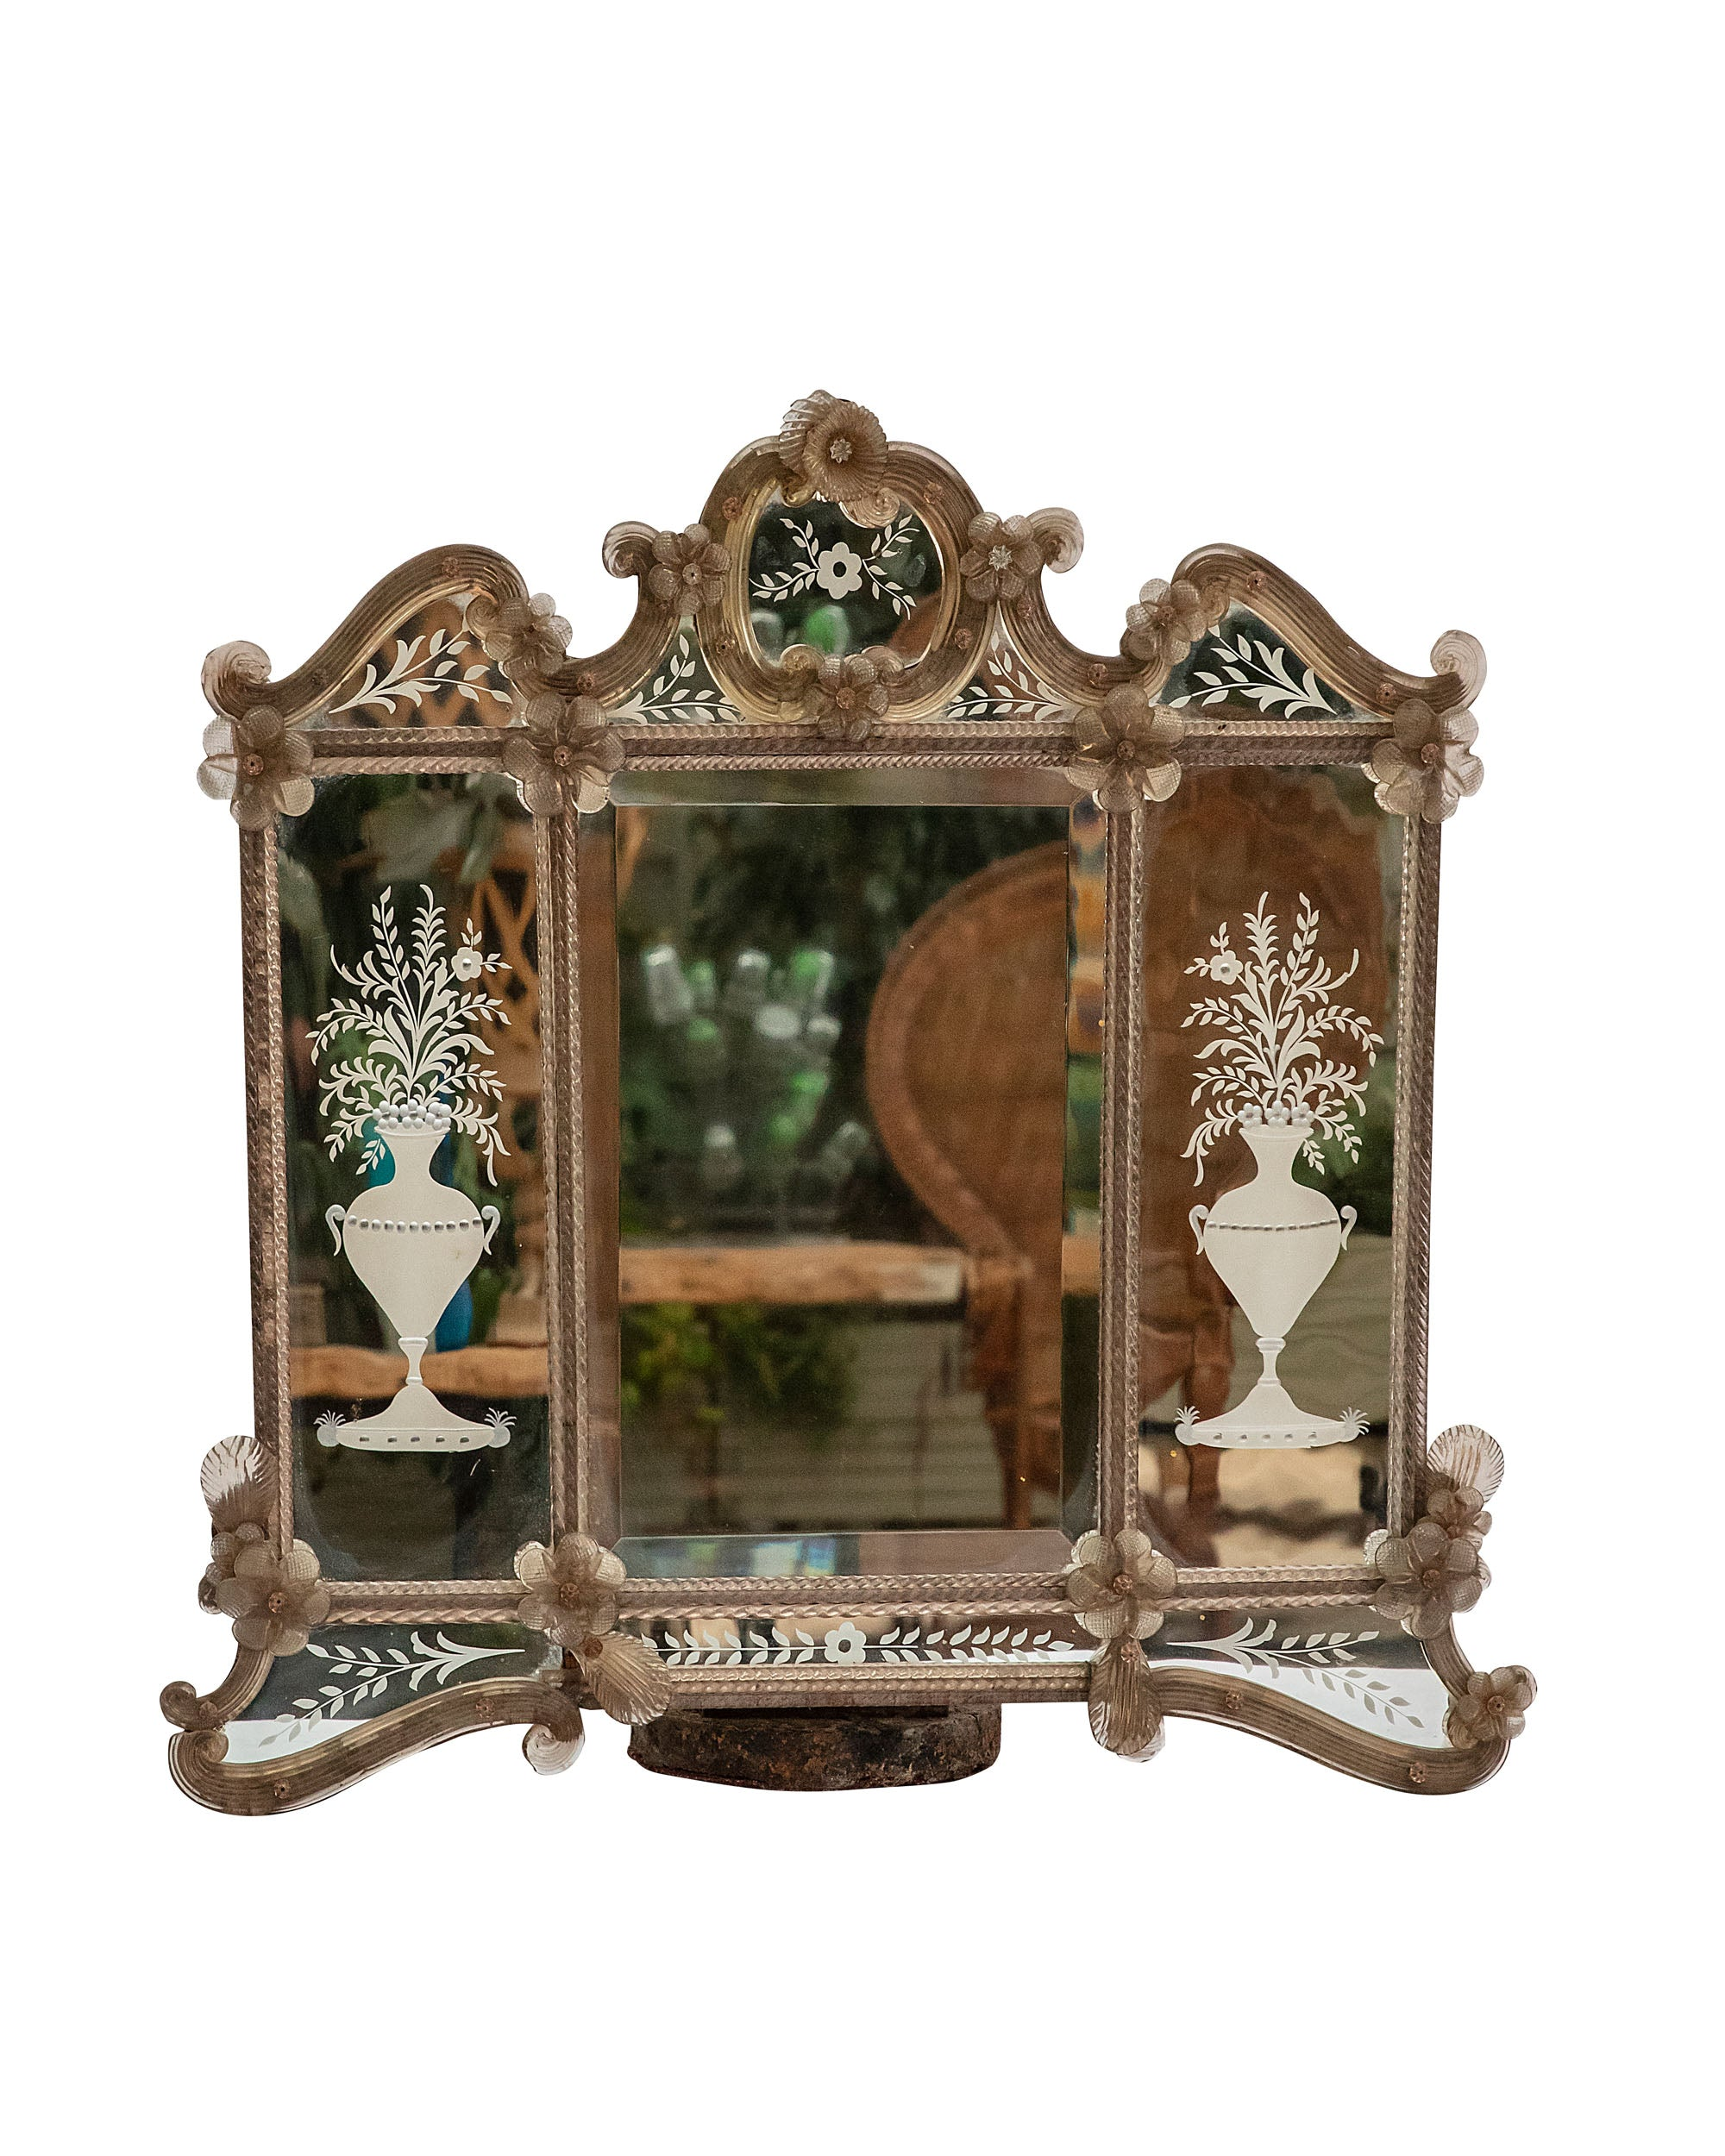 Venetian mirror with floral decorations. Italy. XIXth century